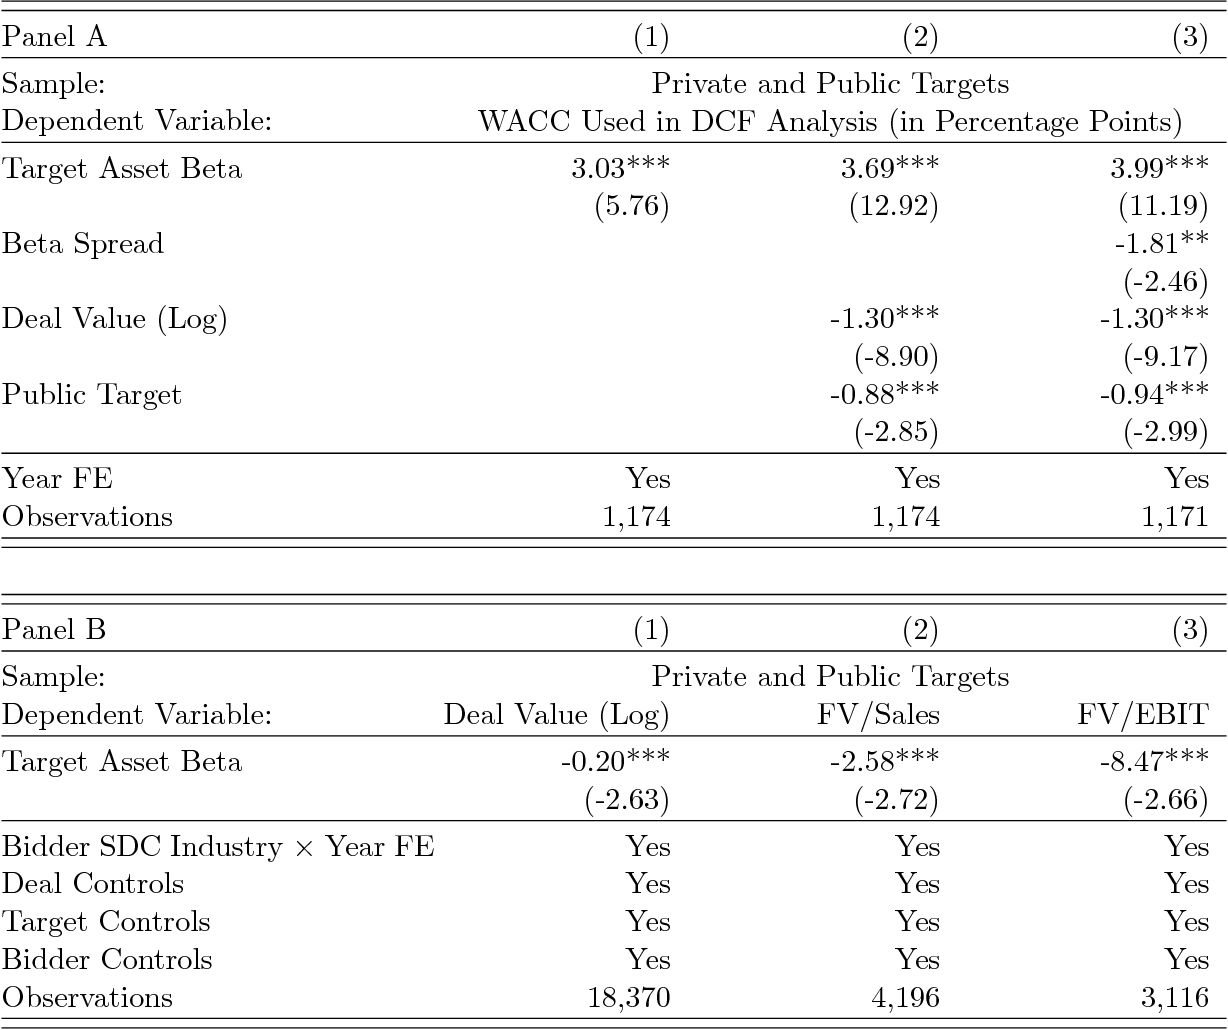 Table 2 Discount Rate Used In MA Fairness Opinions And Bid Implied Target Valuations